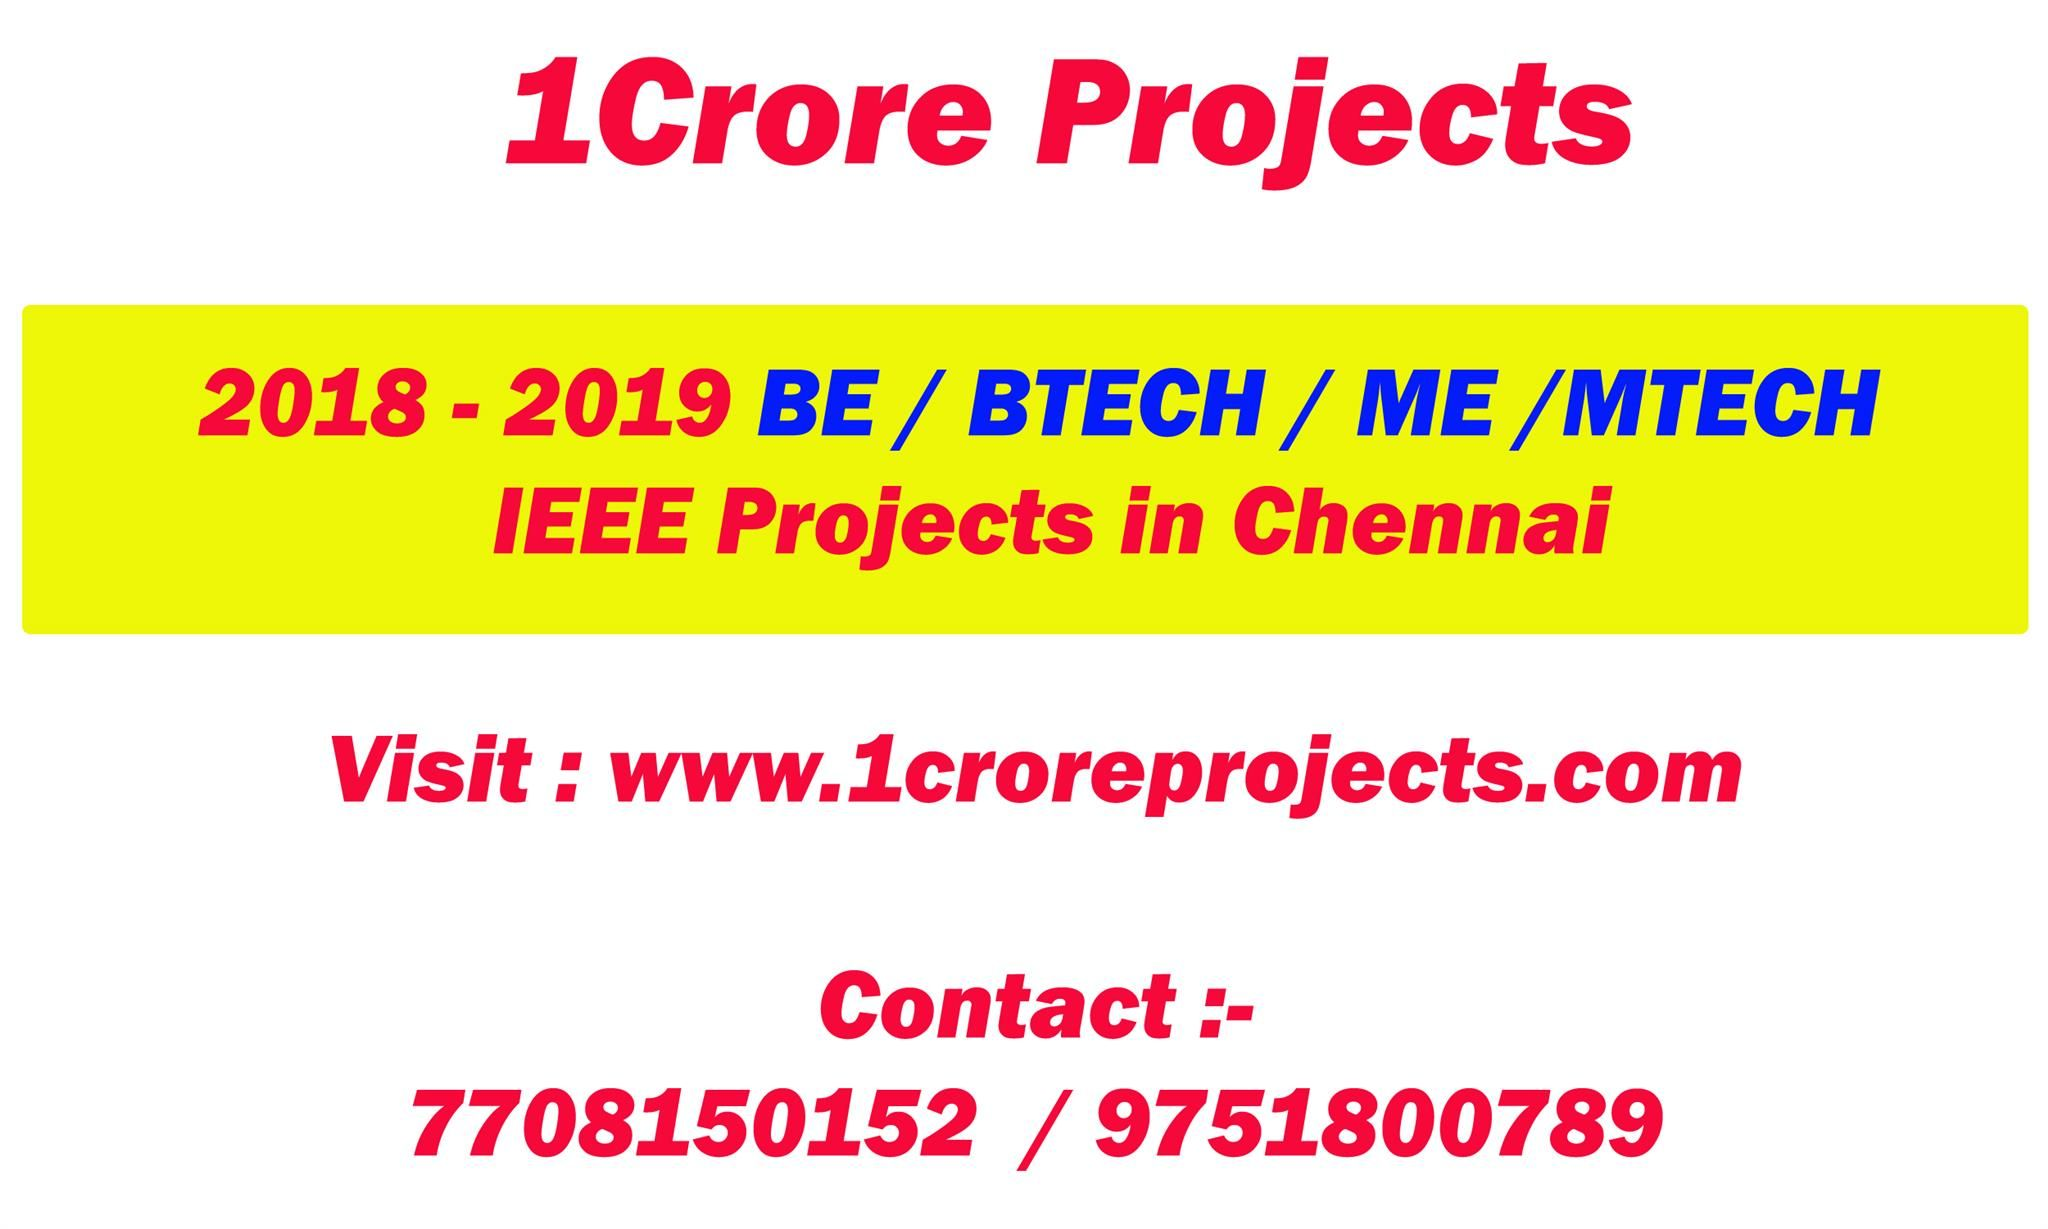 1 Crore Project Offers Ieee 2018 2019 Mini Projects For Java Dotnet Android Php Web Design And Web Development Design Engineering Projects Business Process